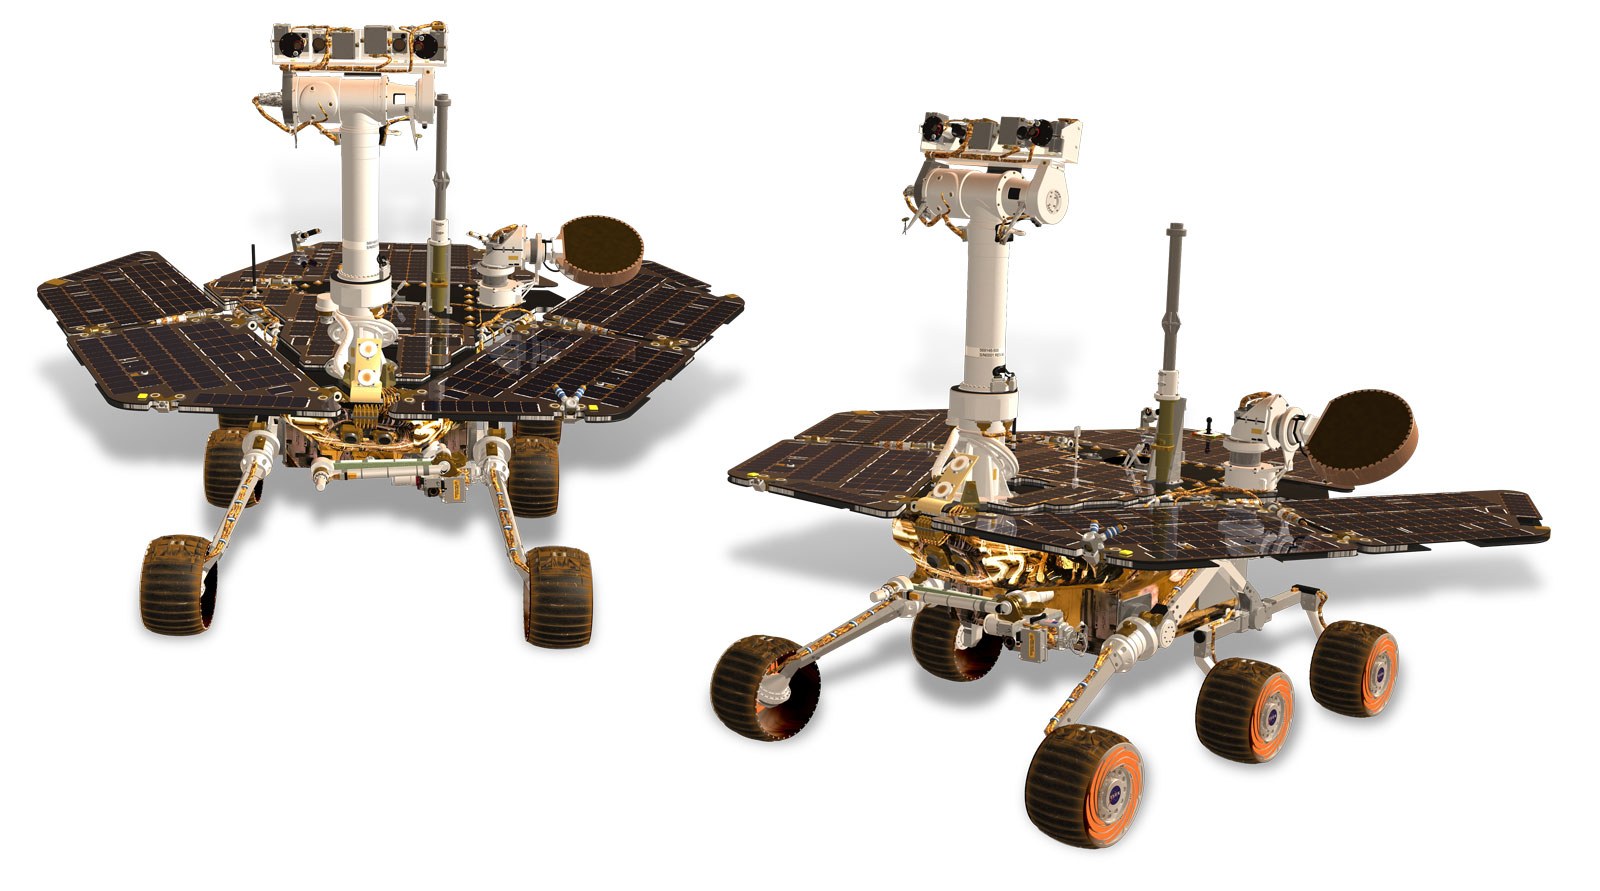 This artist's rendering depicts NASA's Mars Exploration Rovers, Spirit and Opportunity. The twin rovers were launched in 2003 and arrived on Mars in January 2004.